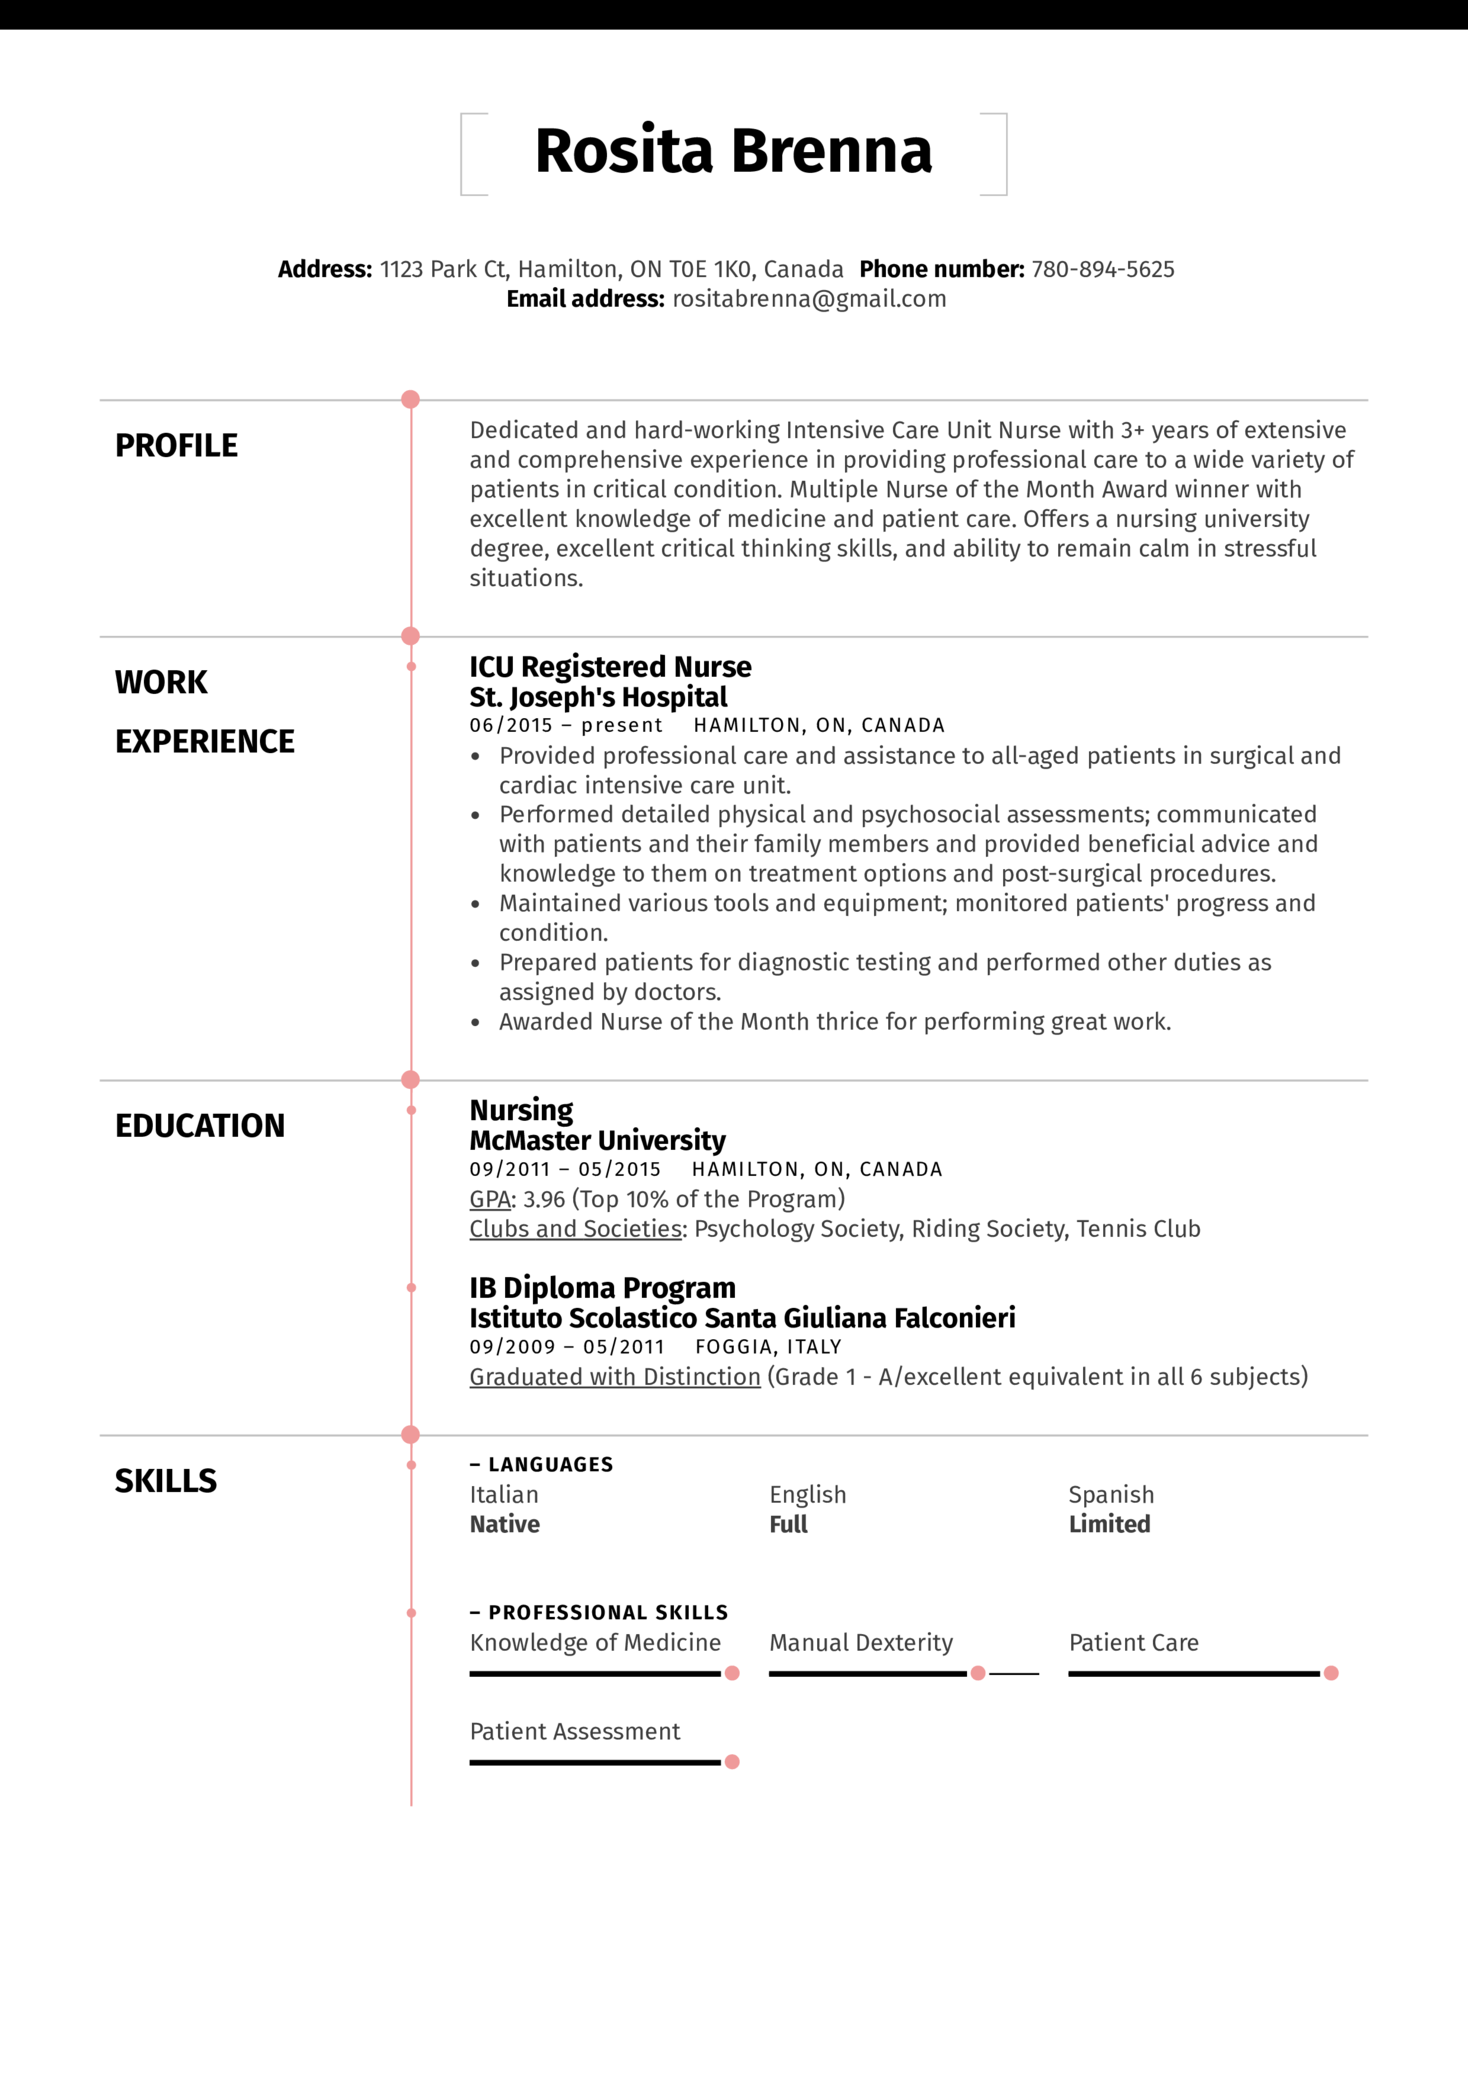 Resume Examples by Real People: ICU Registered Nurse Resume ...